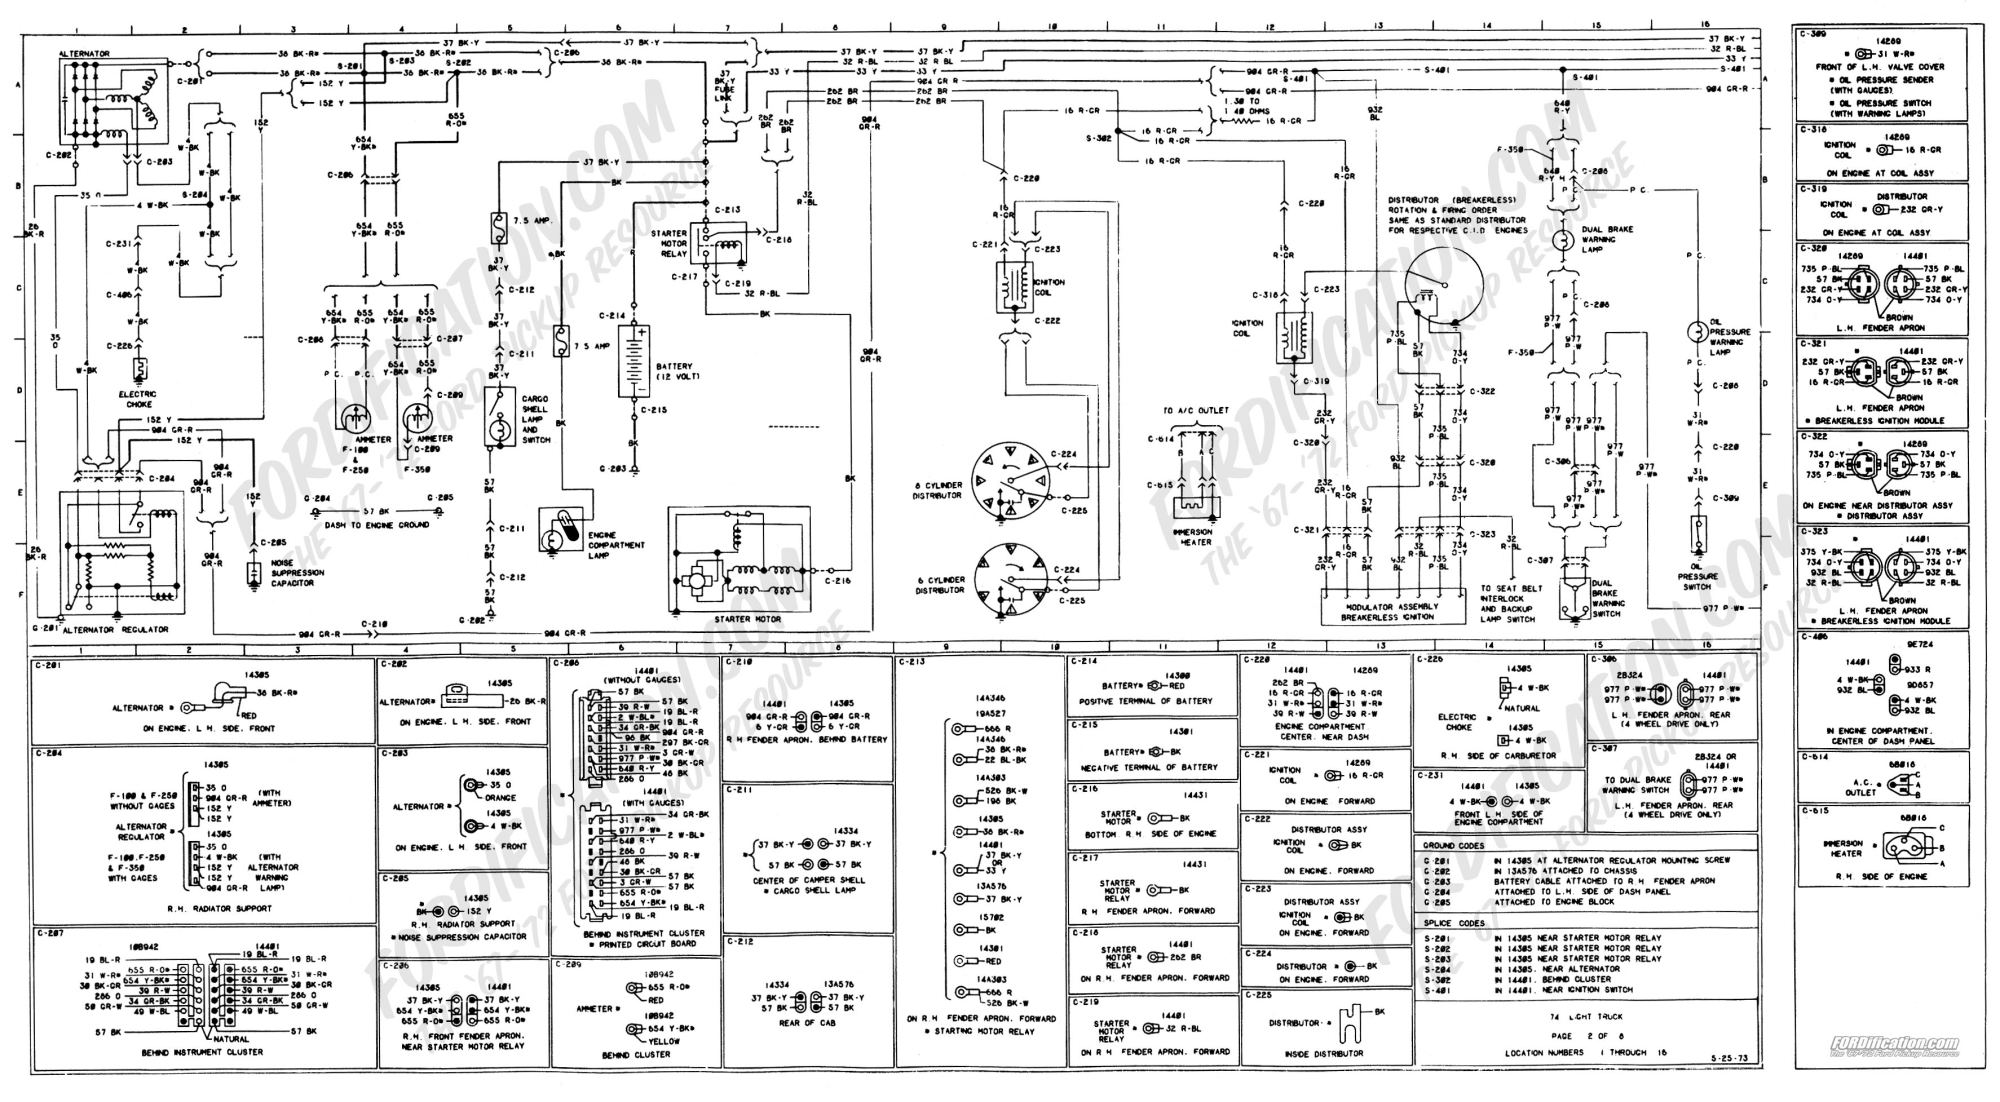 hight resolution of ford f800 wiring schematic wiring diagram third levelf800 wire diagram wiring diagram todays 1998 ford ranger